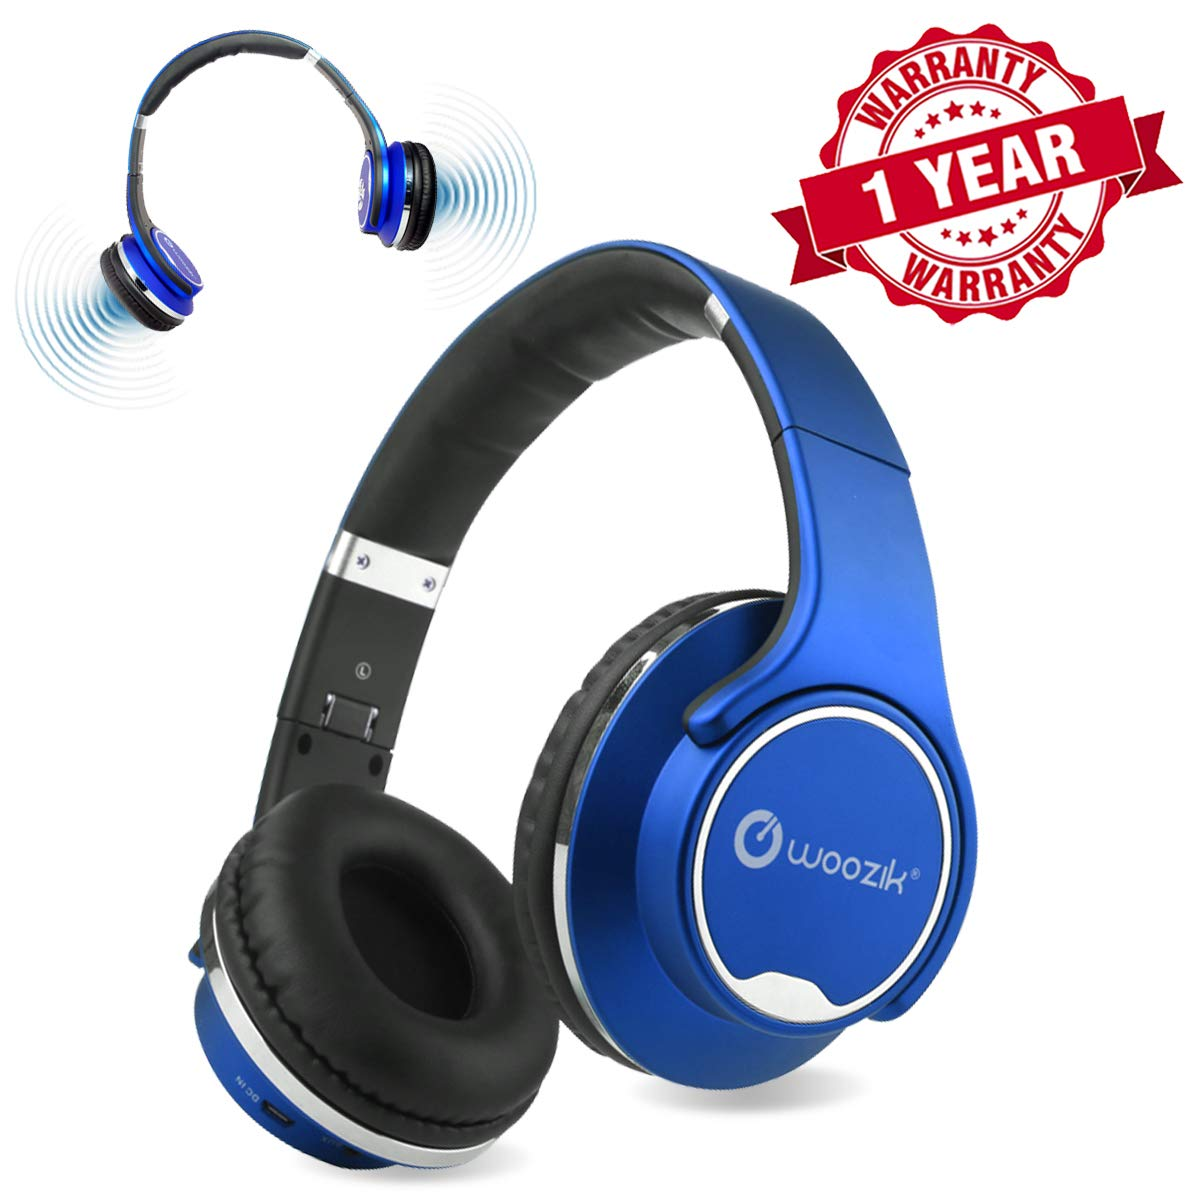 Bluetooth Headphones, Wireless Speakers, Woozik Twist Over Ear 2 in 1 Hybrid Headset with Built-in FM Radio, Micro-SD Card Slot, AUX, Volume Control, Mic (Blue)